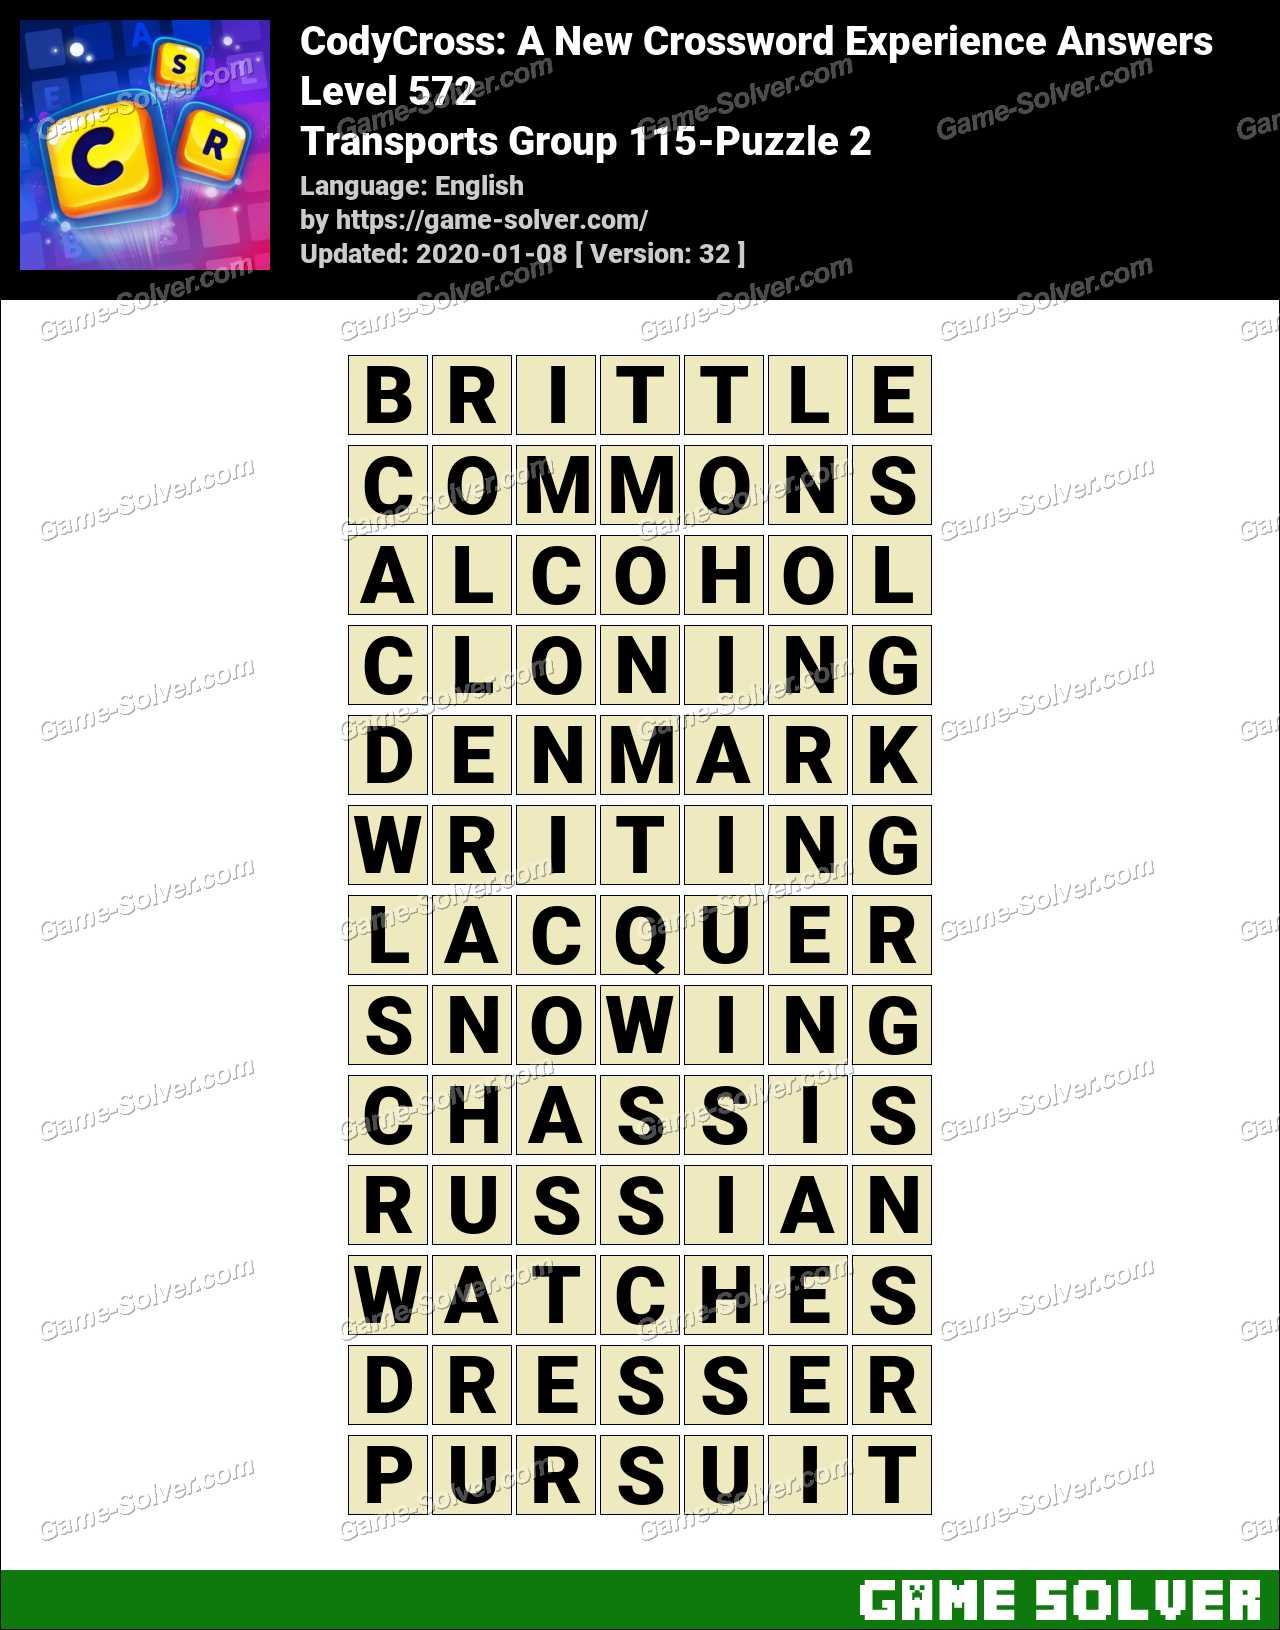 CodyCross Transports Group 115-Puzzle 2 Answers